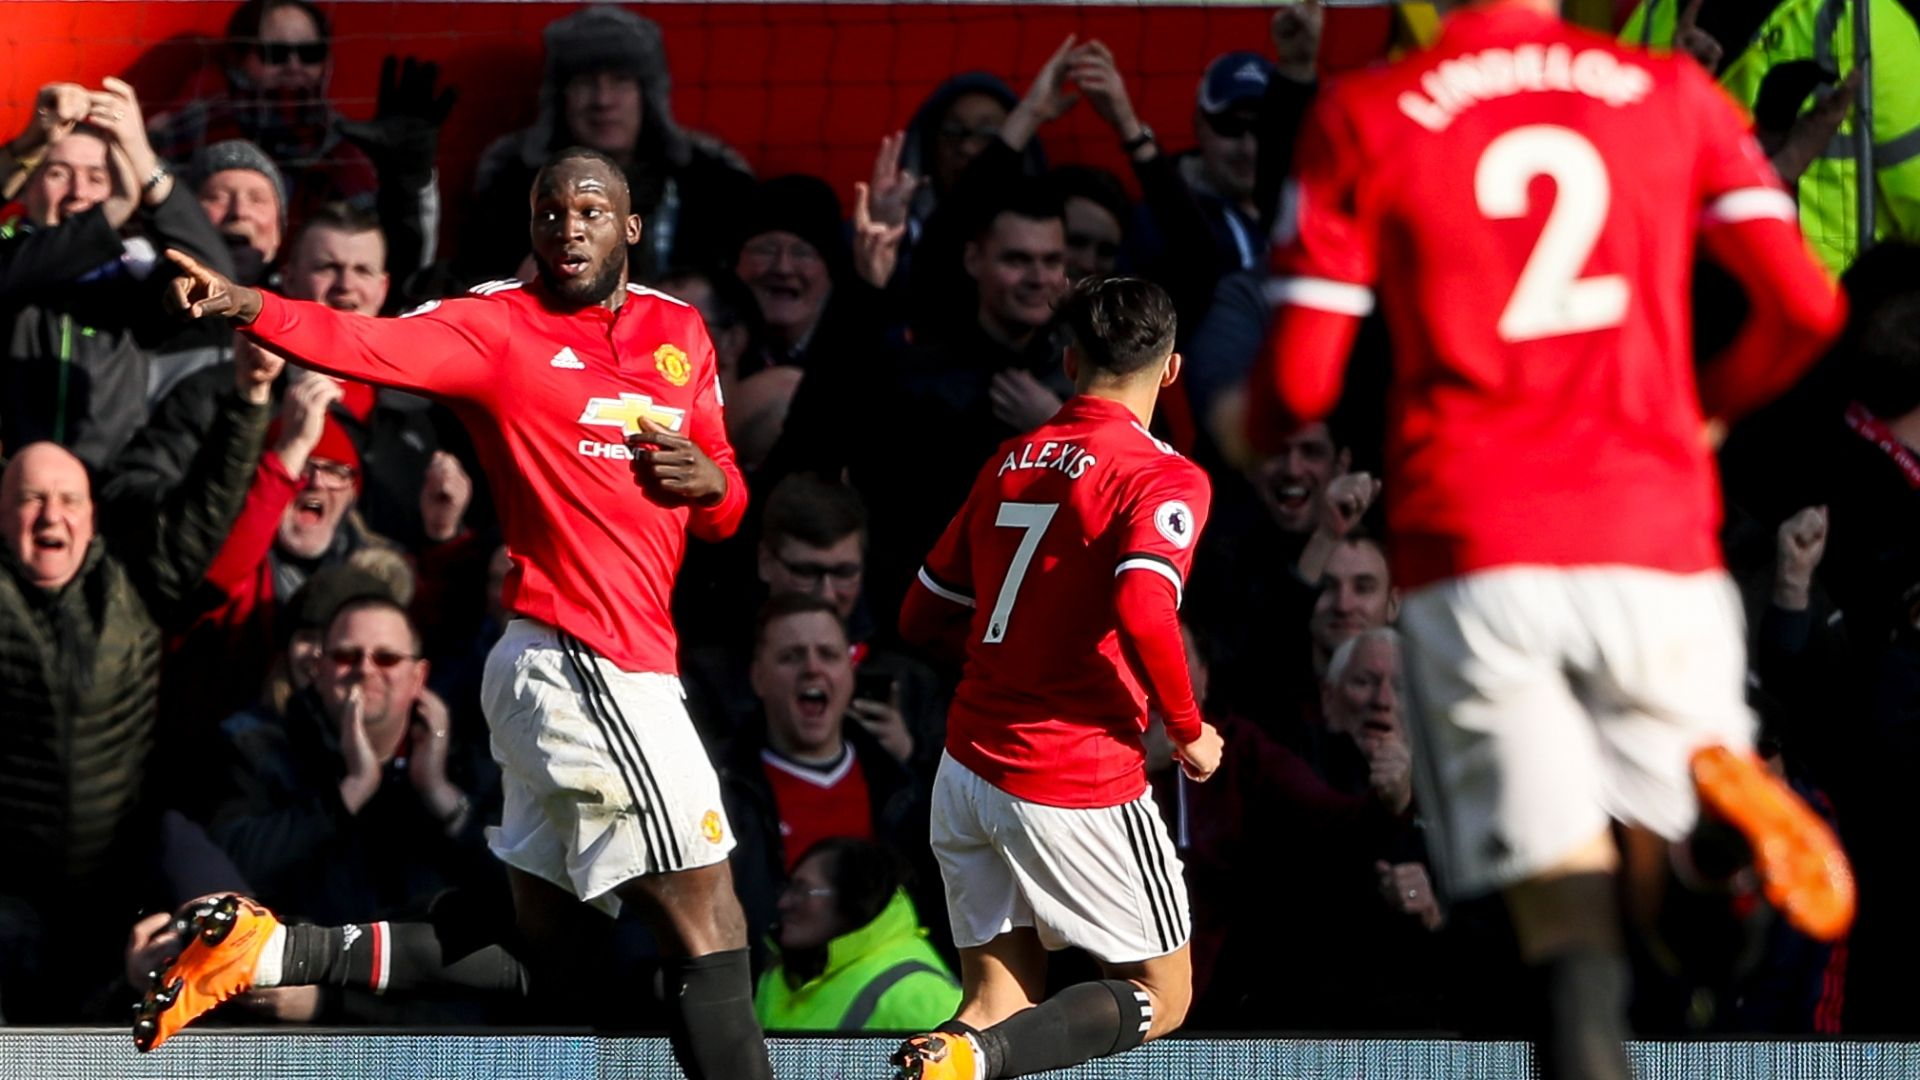 Lukaku powers Man United to win over former club